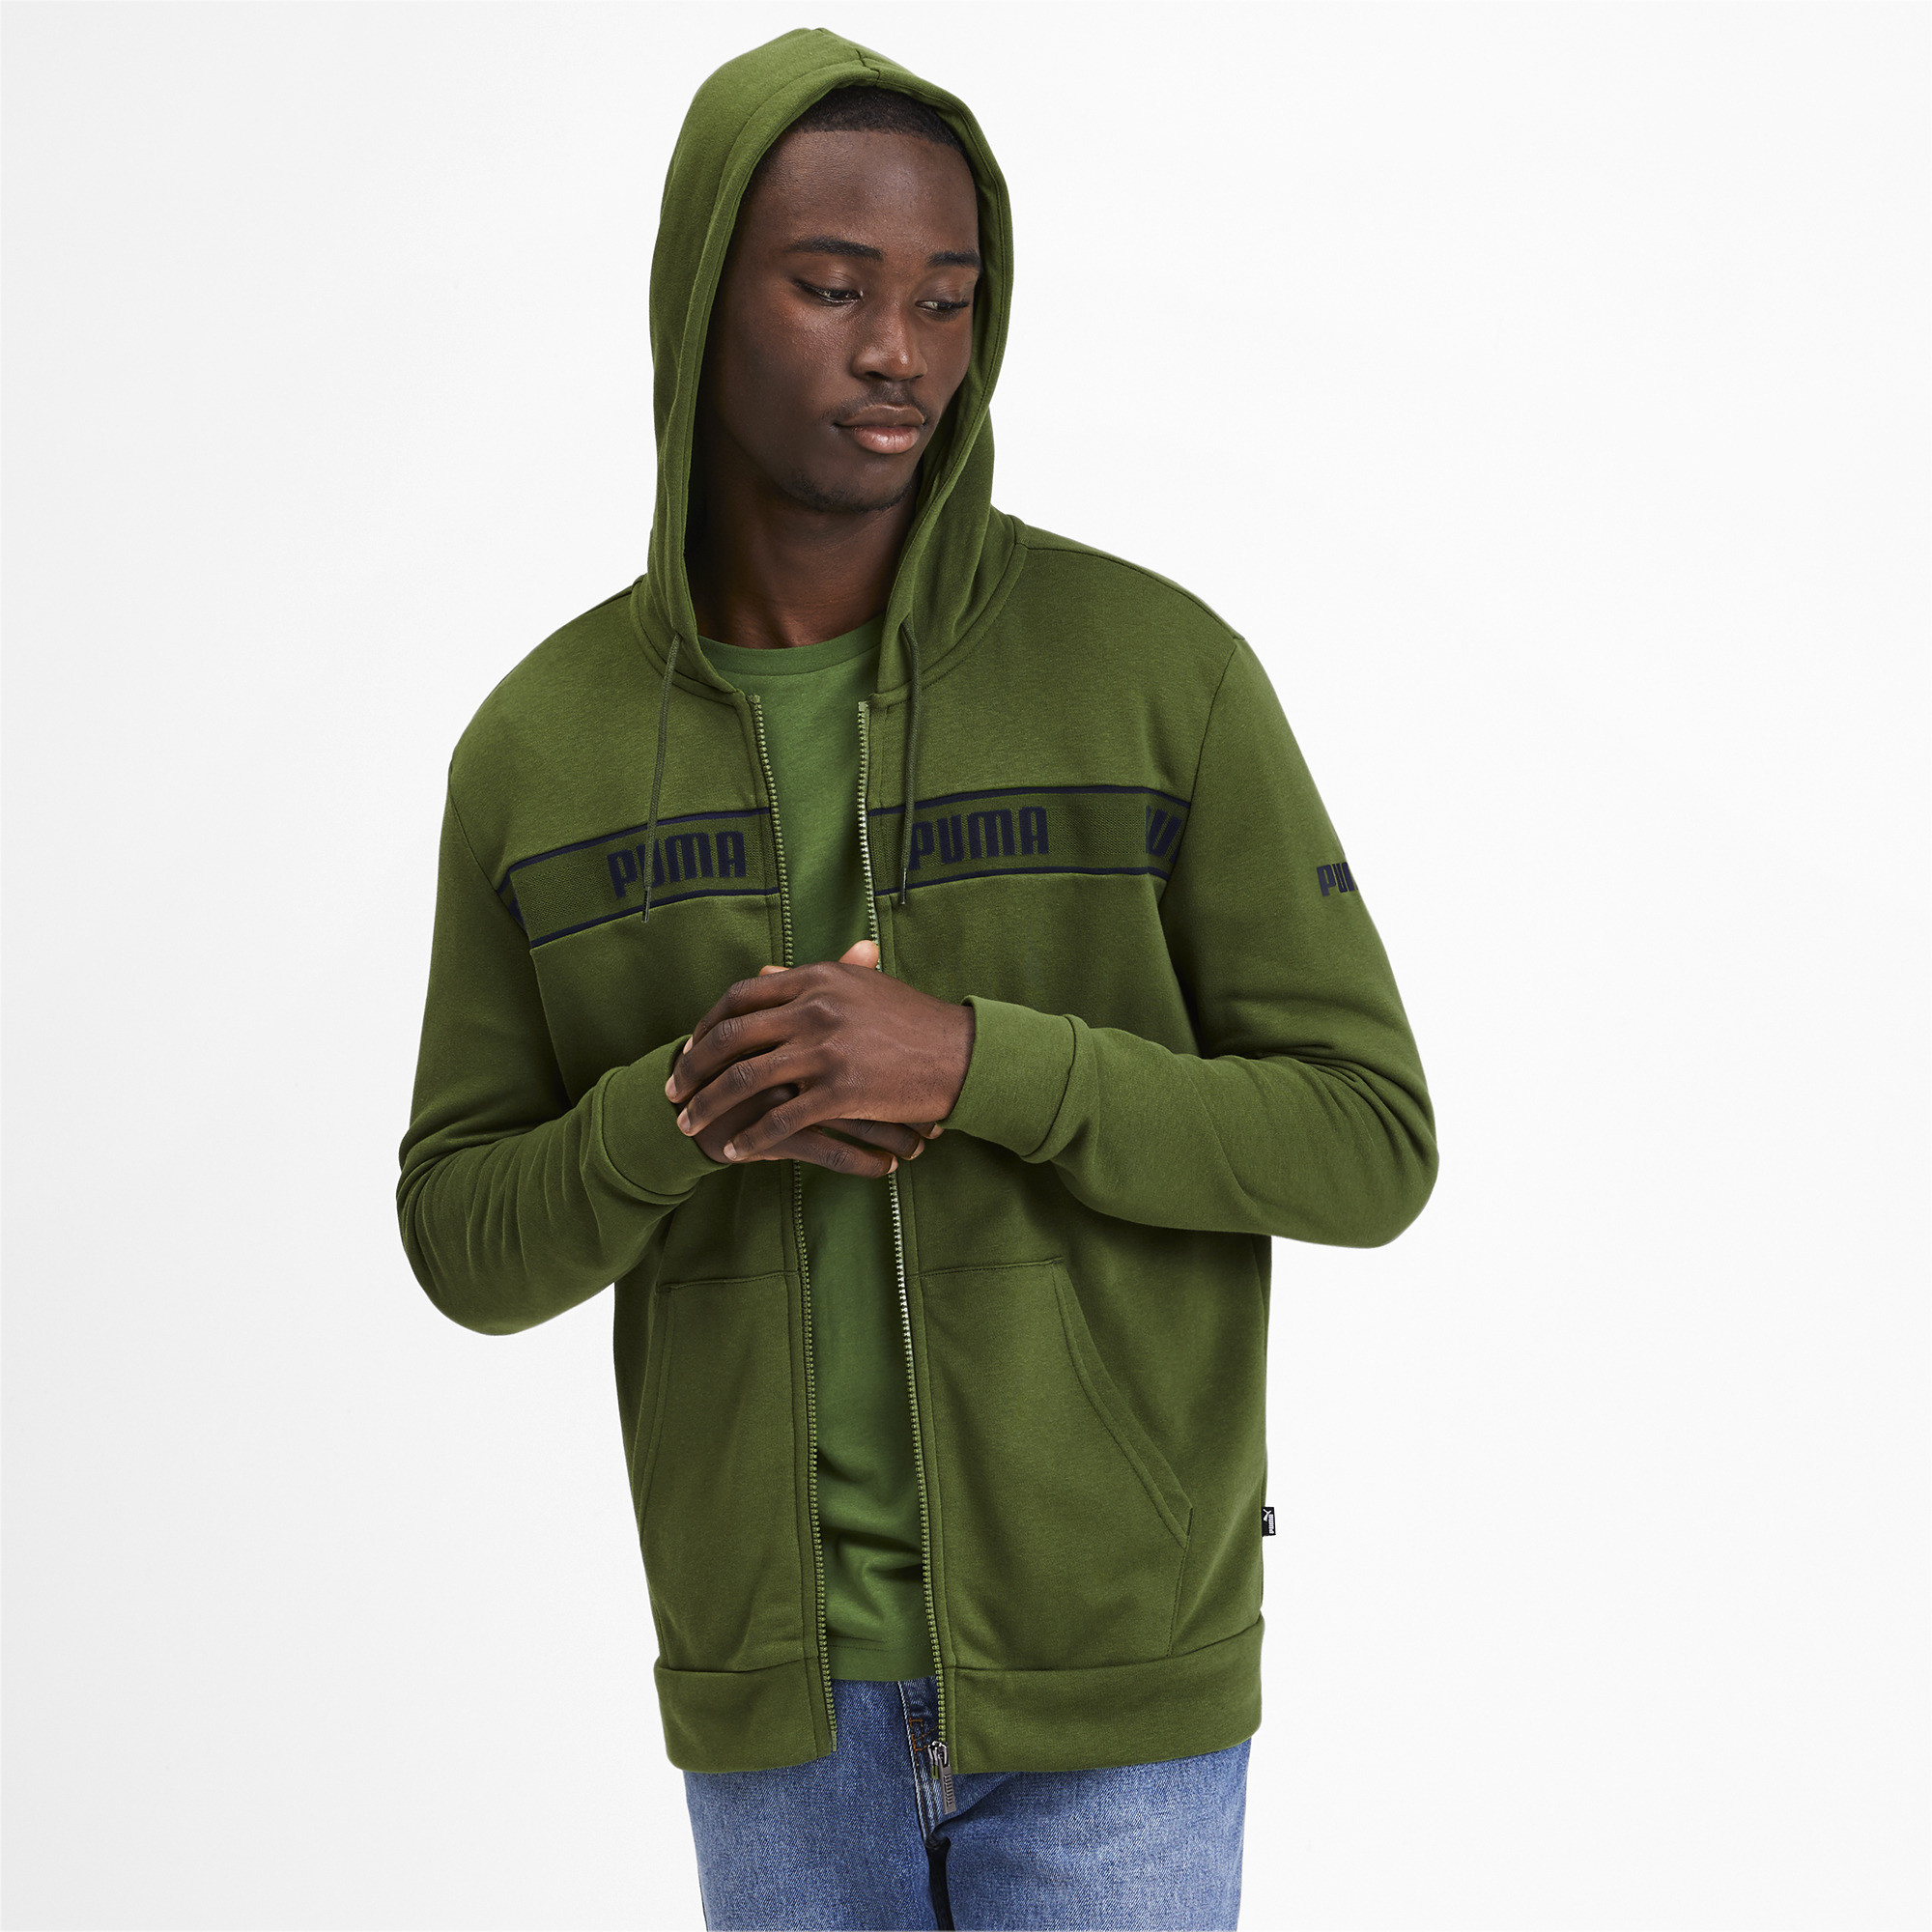 PUMA-Amplified-Men-039-s-Hooded-Jacket-Men-Sweat-Basics thumbnail 18